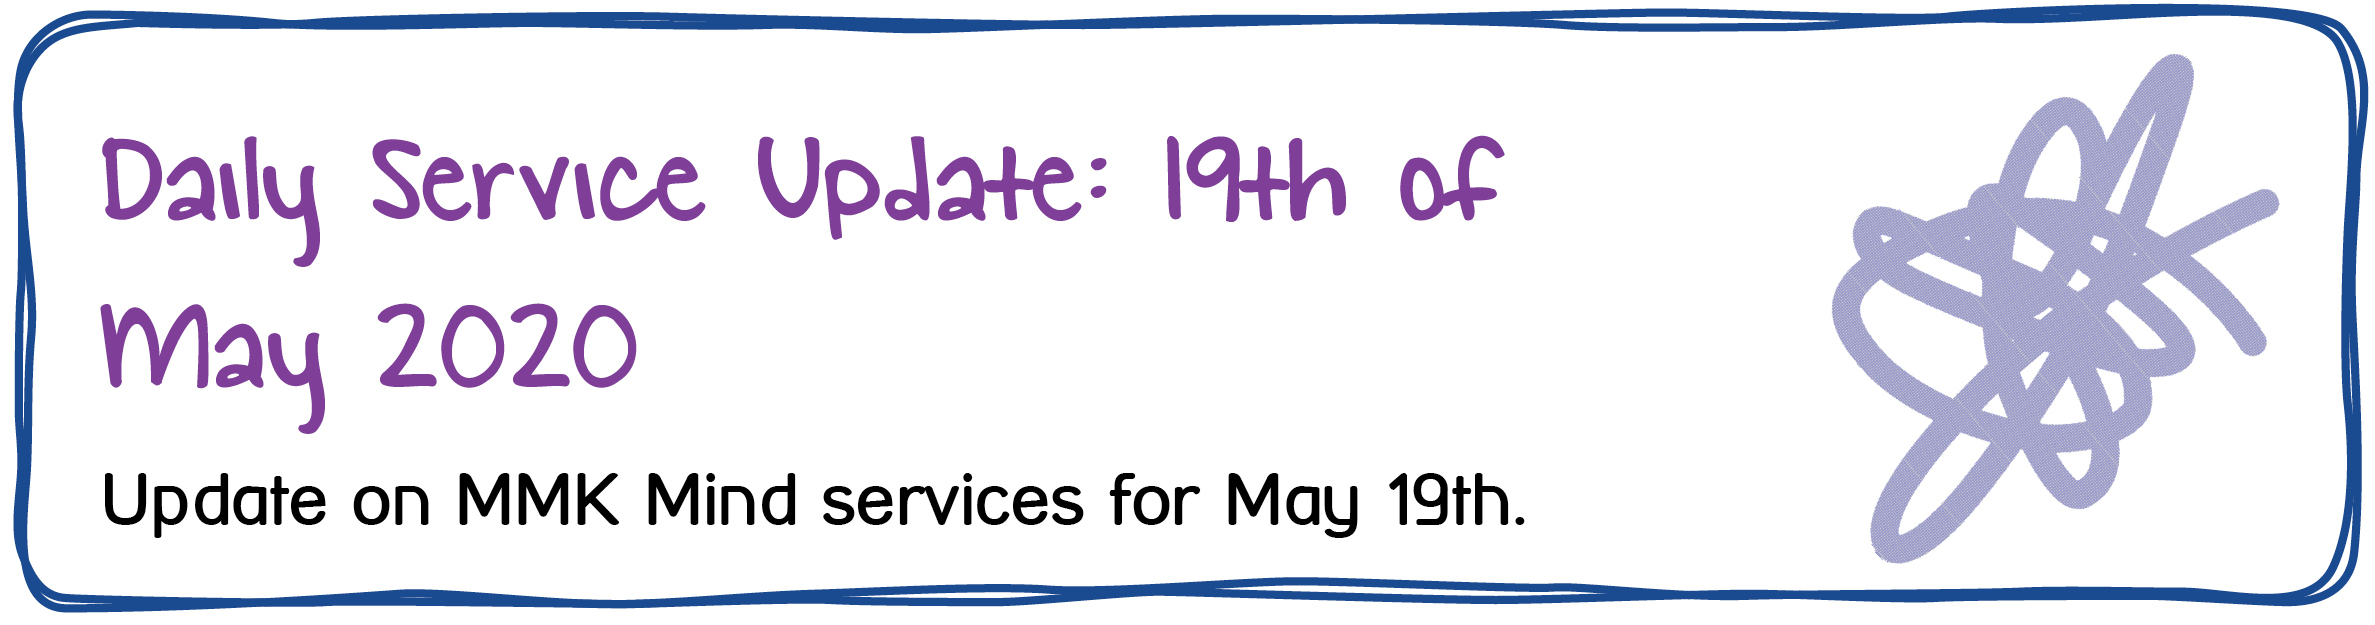 Daily Service Update: 19th of May 2020. Update on MMK Mind services for May 19th.